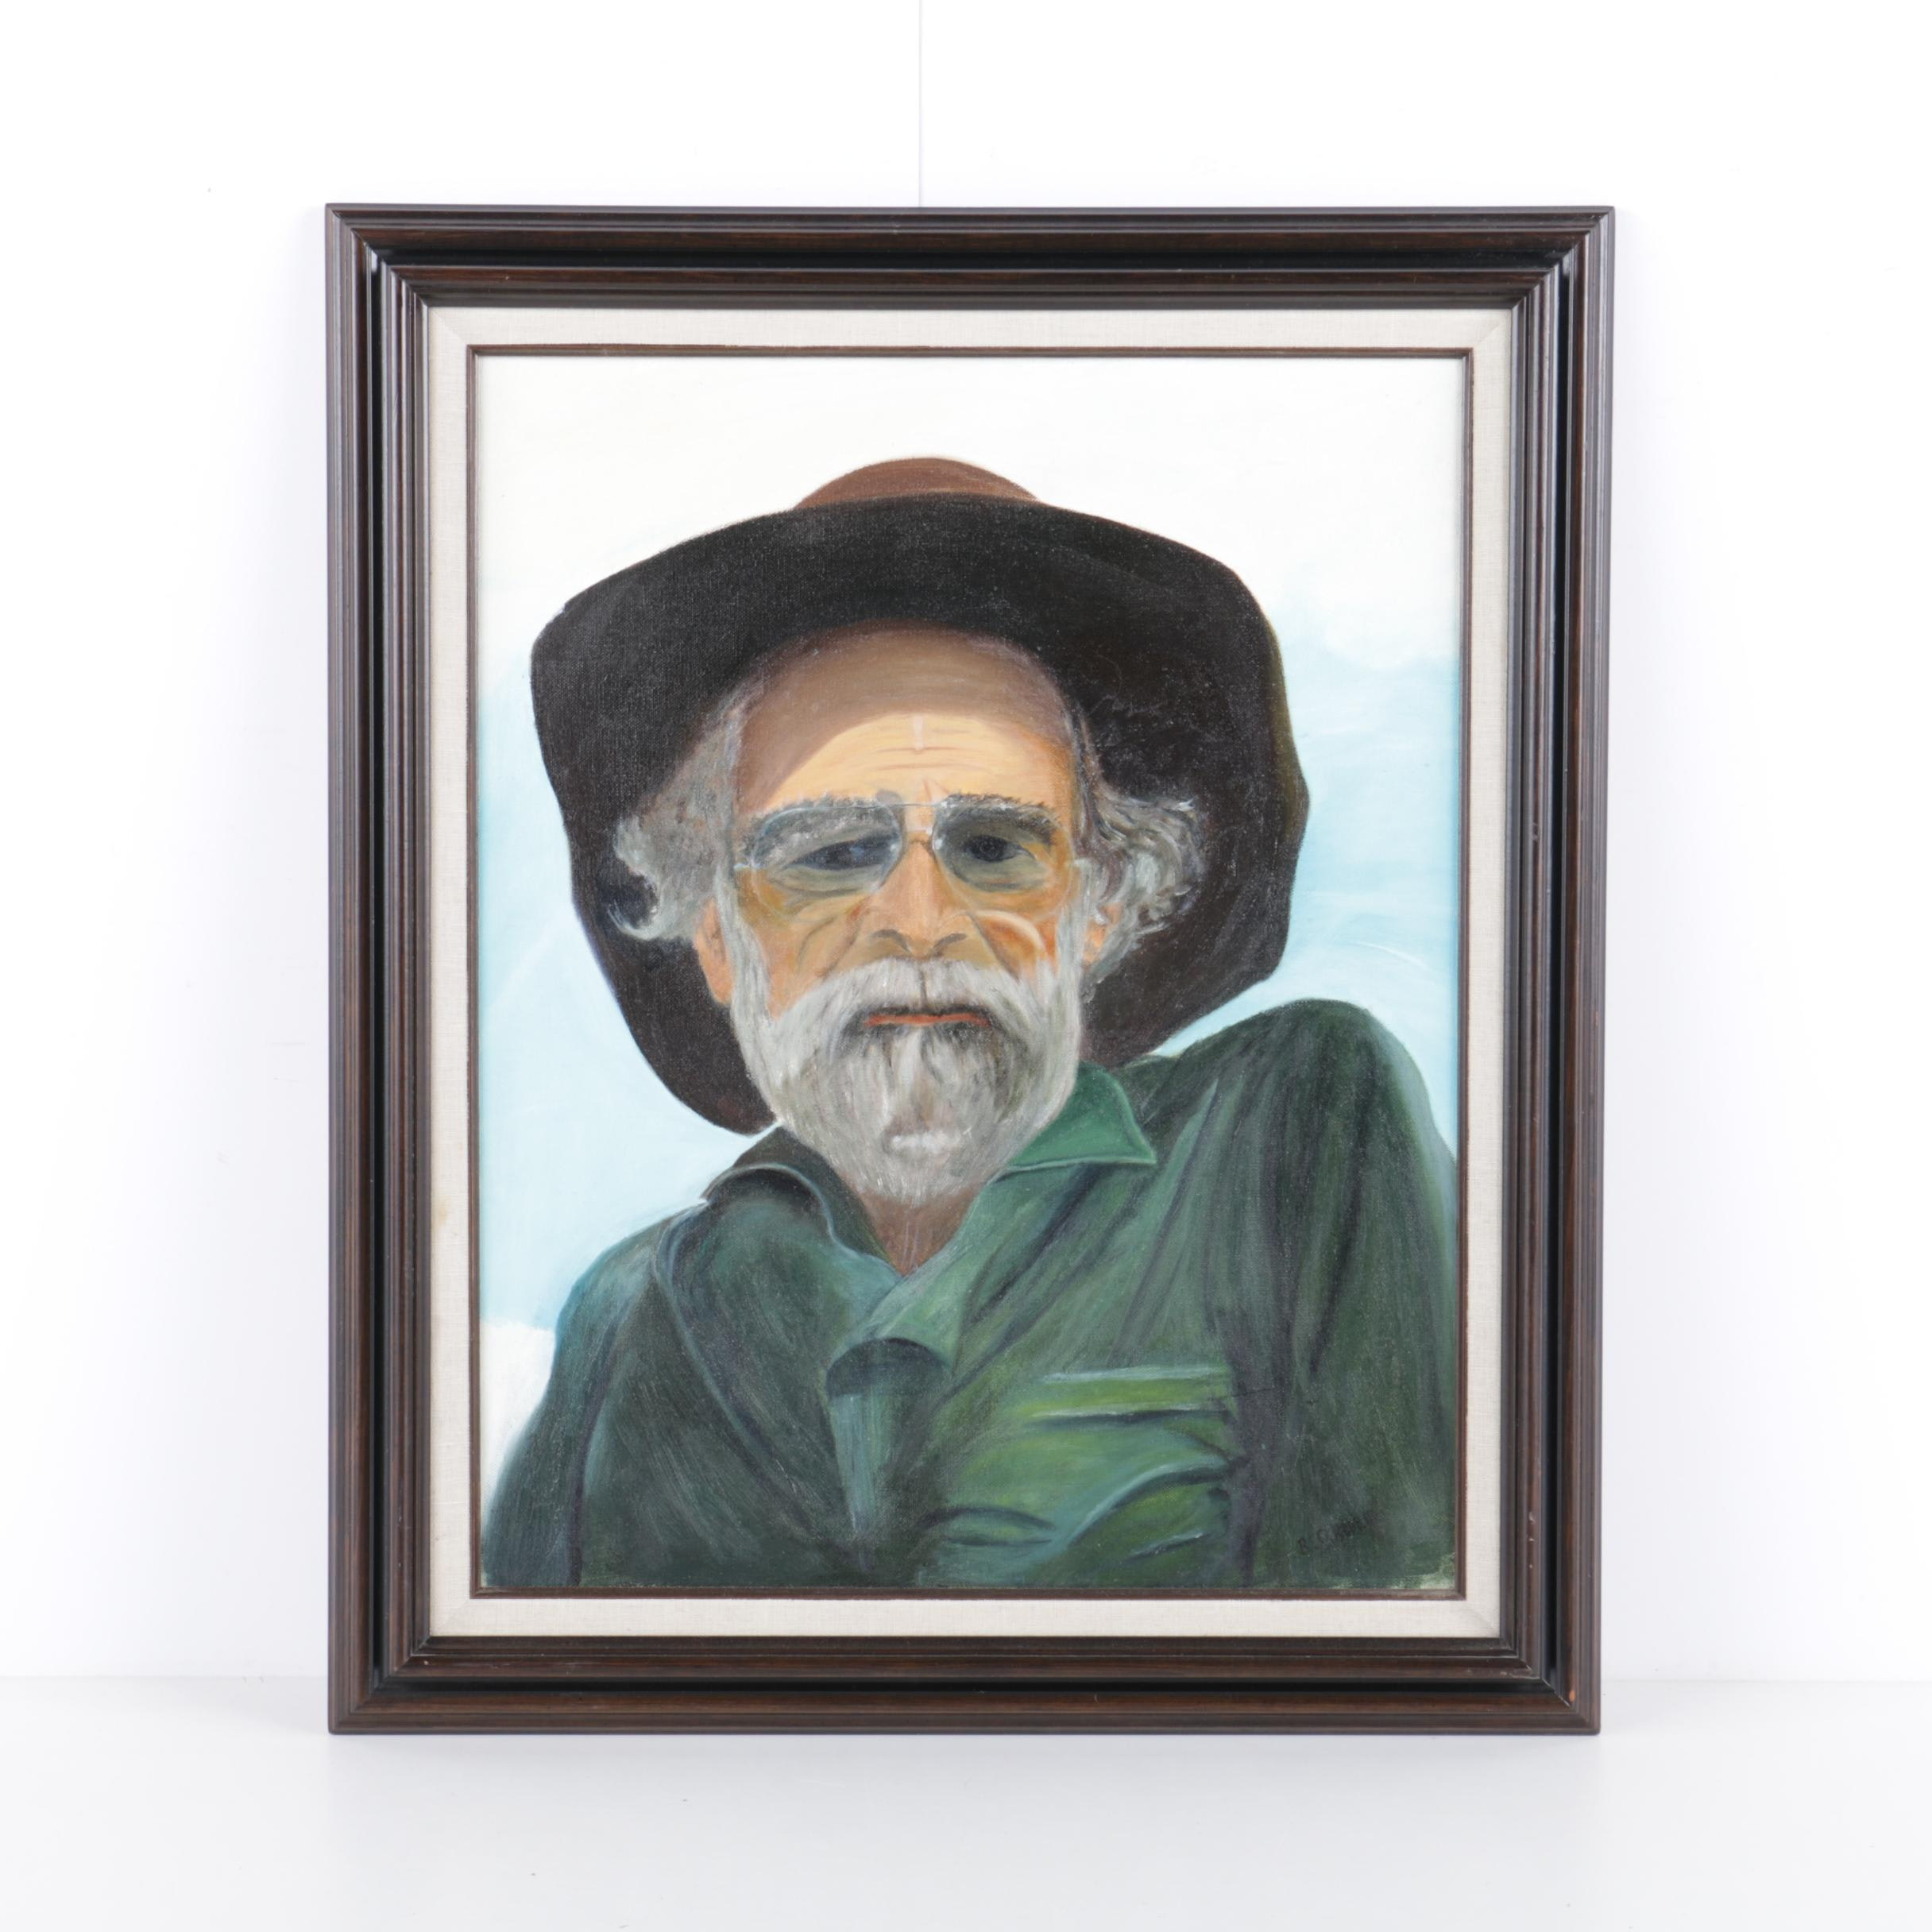 Robert O. Roberts Oil Painting on Canvas of Lew Bell